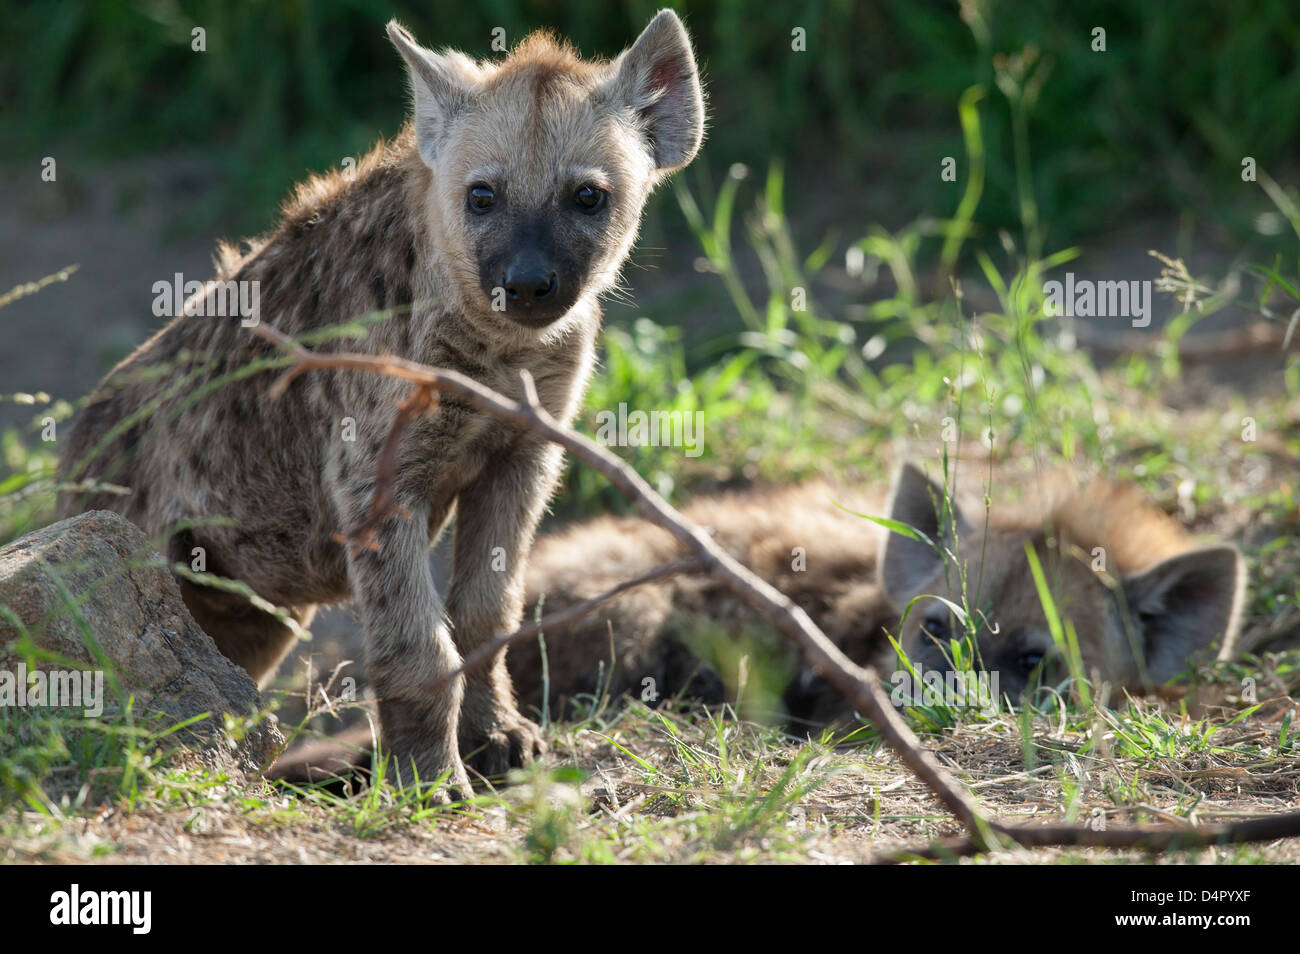 Two young Spotted hyena Crocuta crocuta one laying down resting the other standing about to embark on an adventure - Stock Image